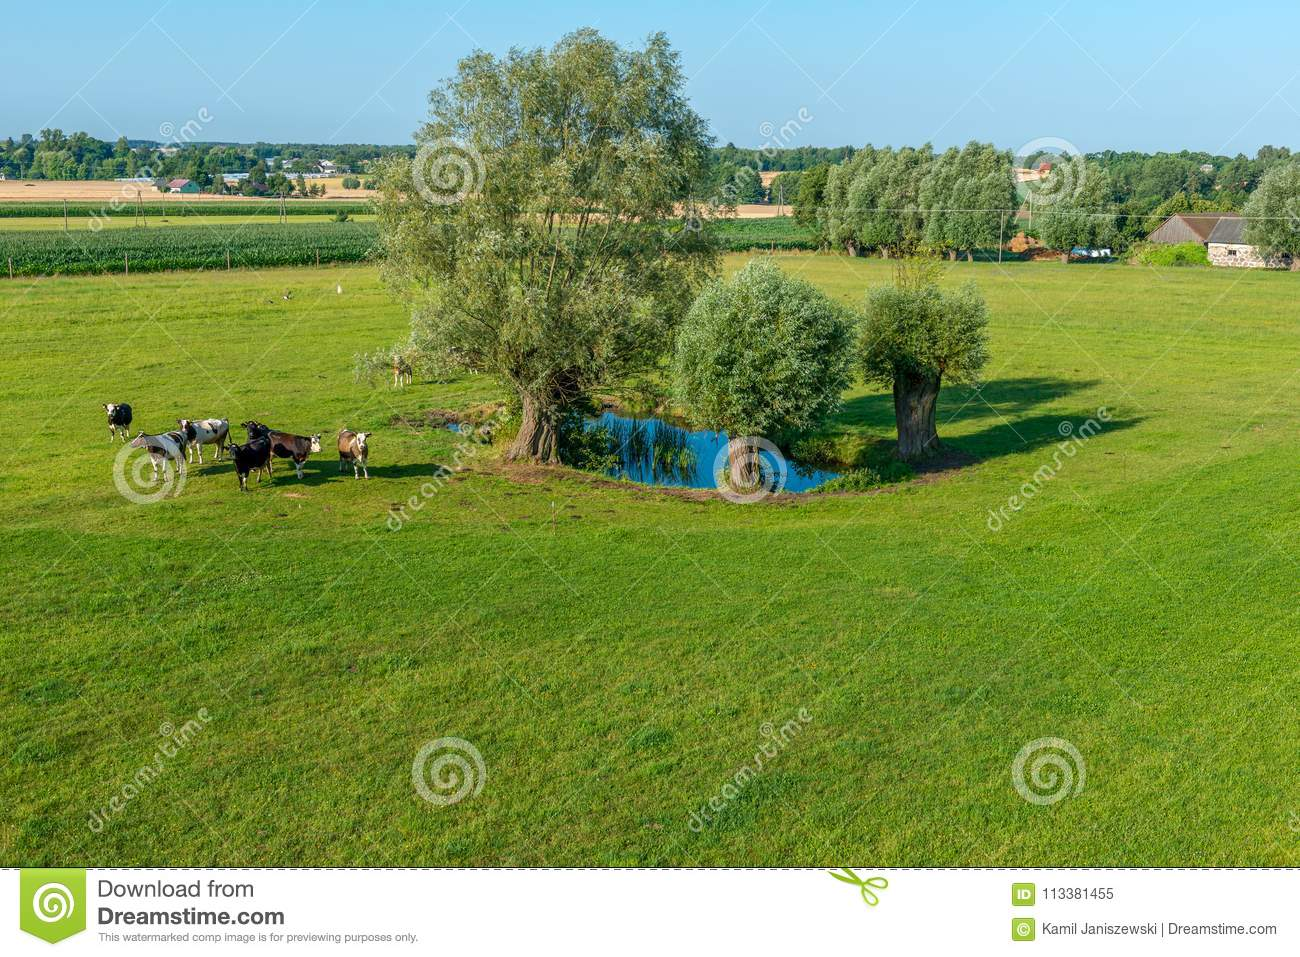 A herd of cows is grazing at a pond on a sunny day